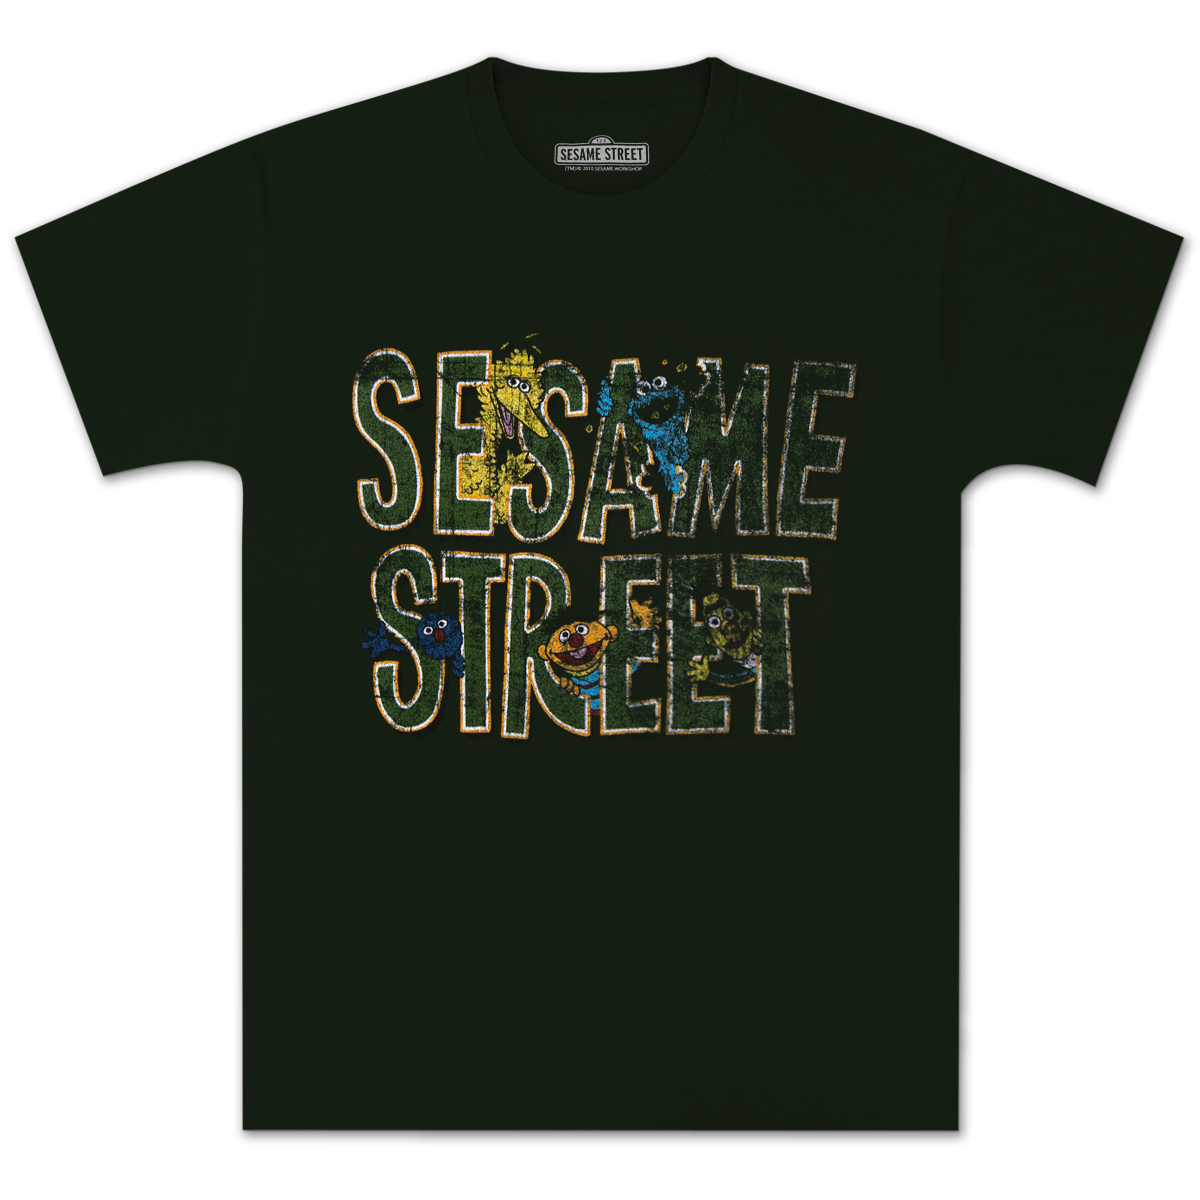 Sesame Street Group Logo T-shirt